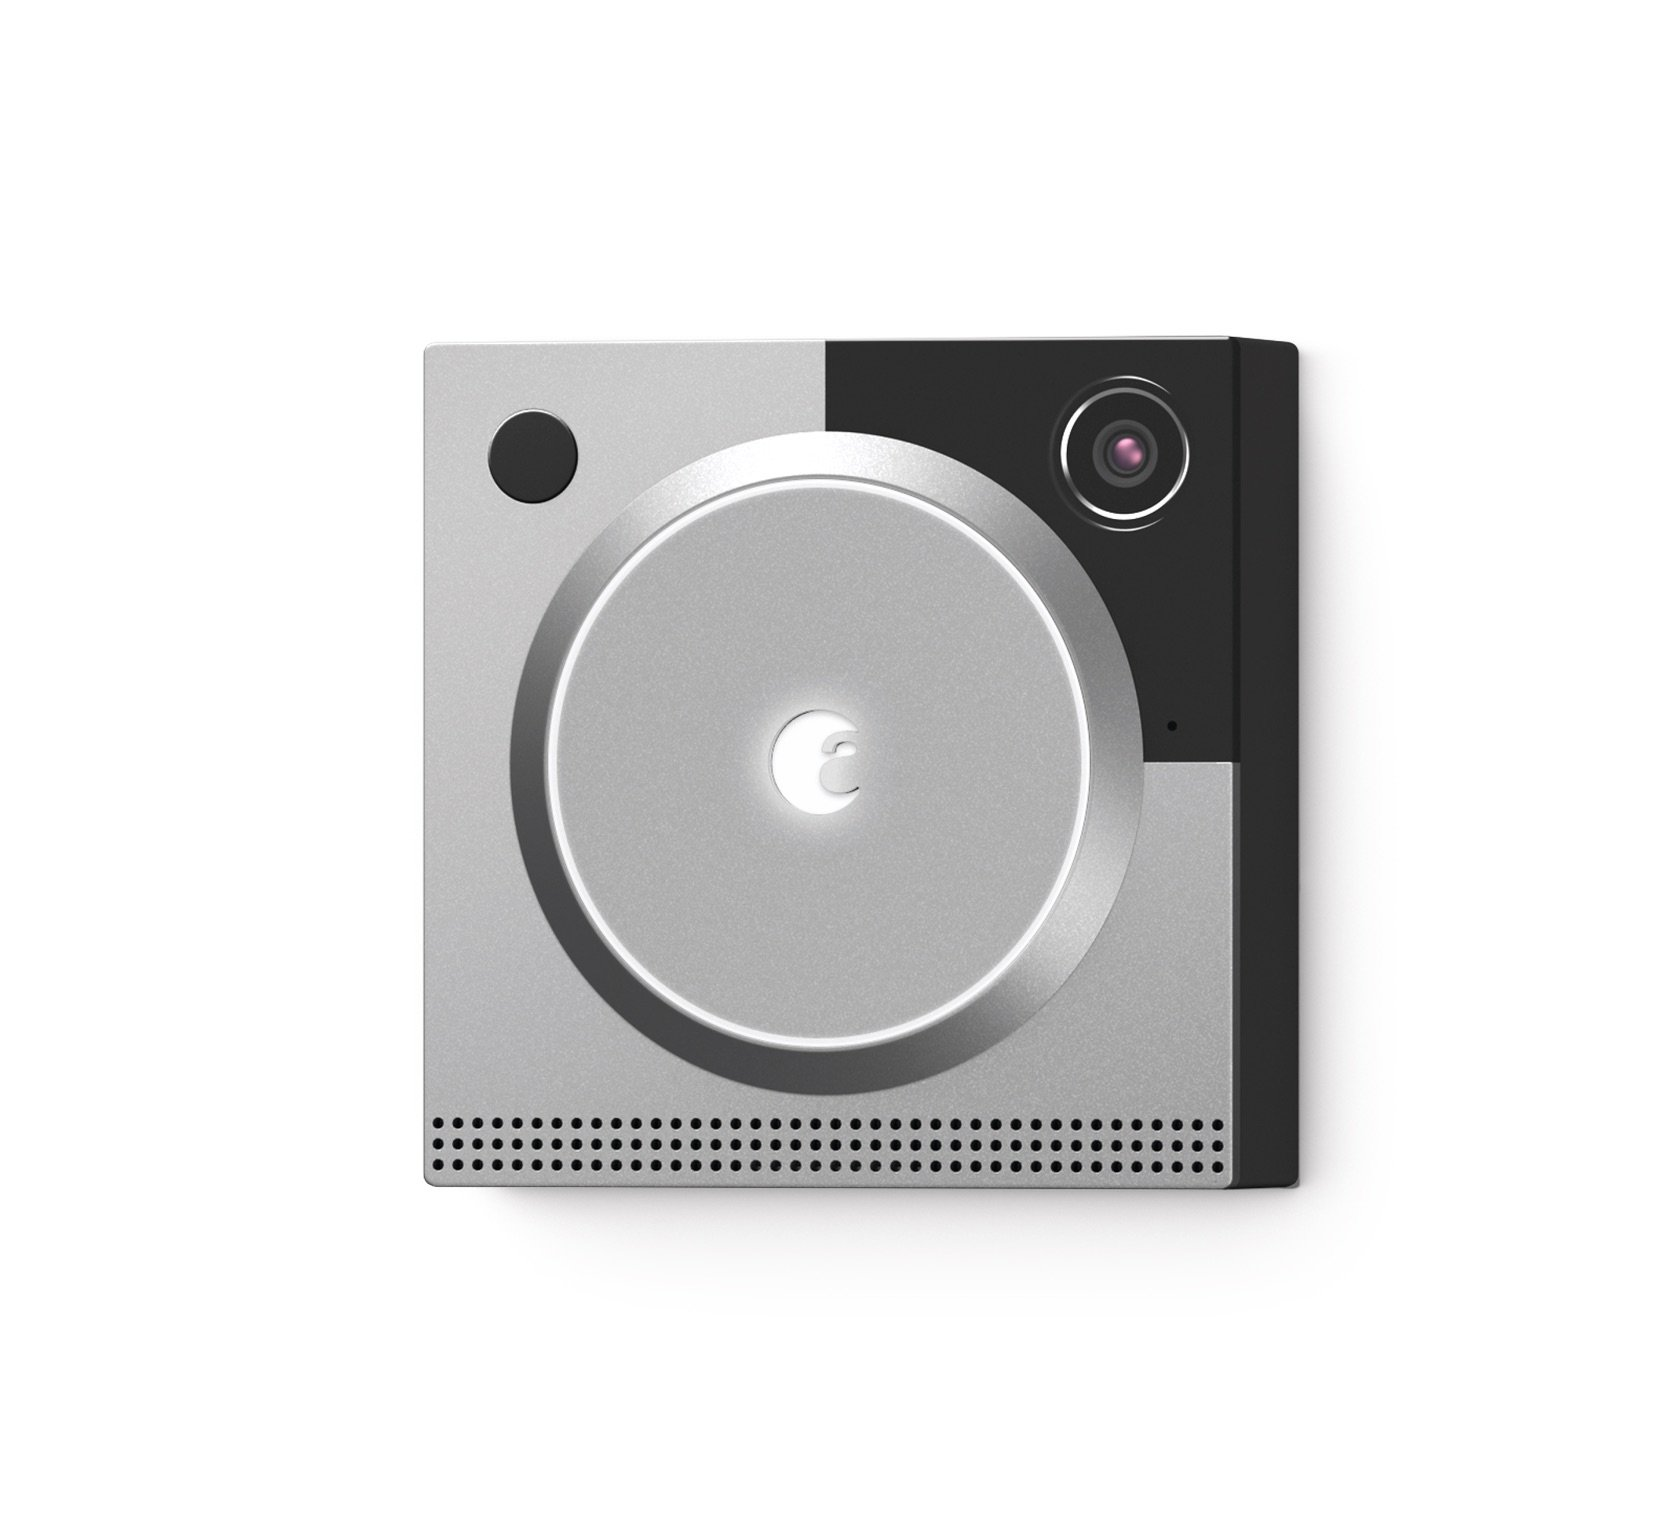 August Doorbell Cam Pro, 2nd generation technology - Silver, Works with Alexa